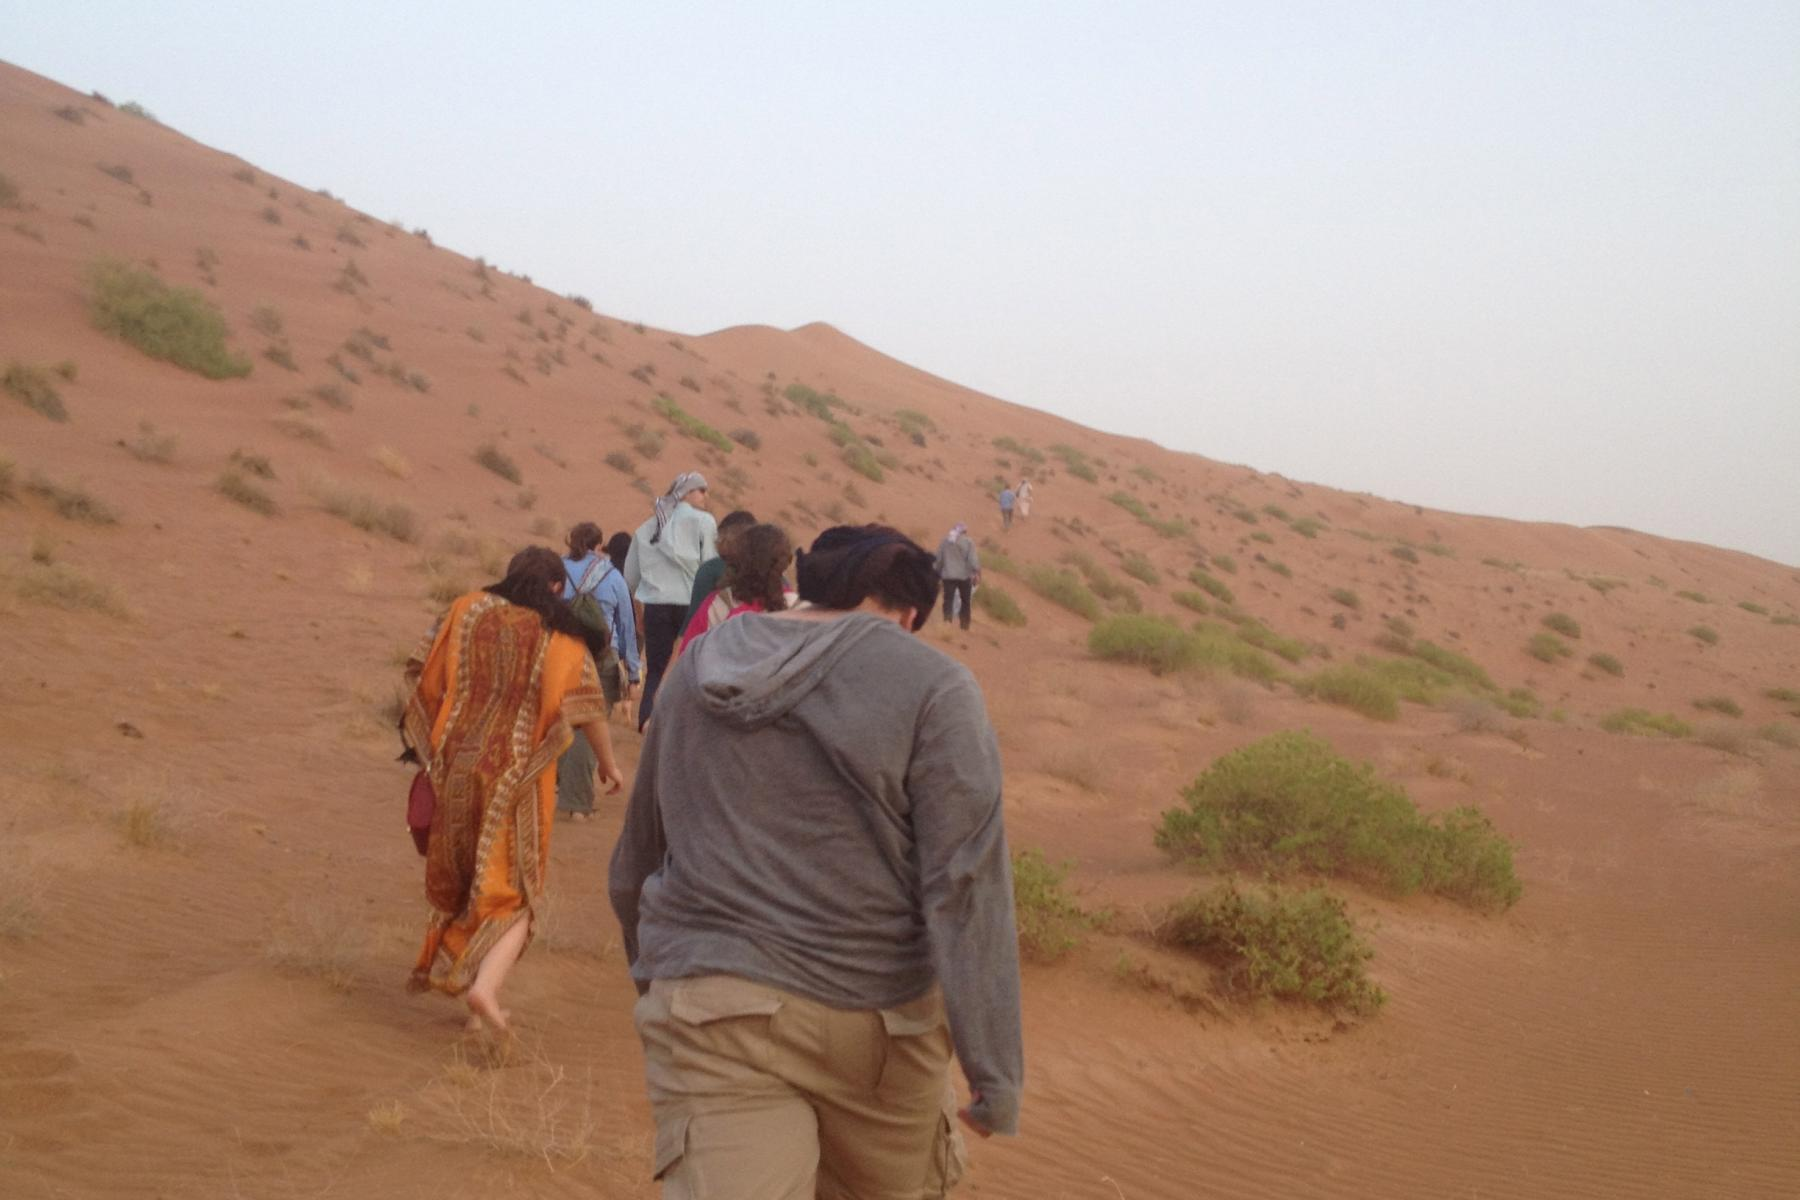 A group of students walking in a line up a sand dune.